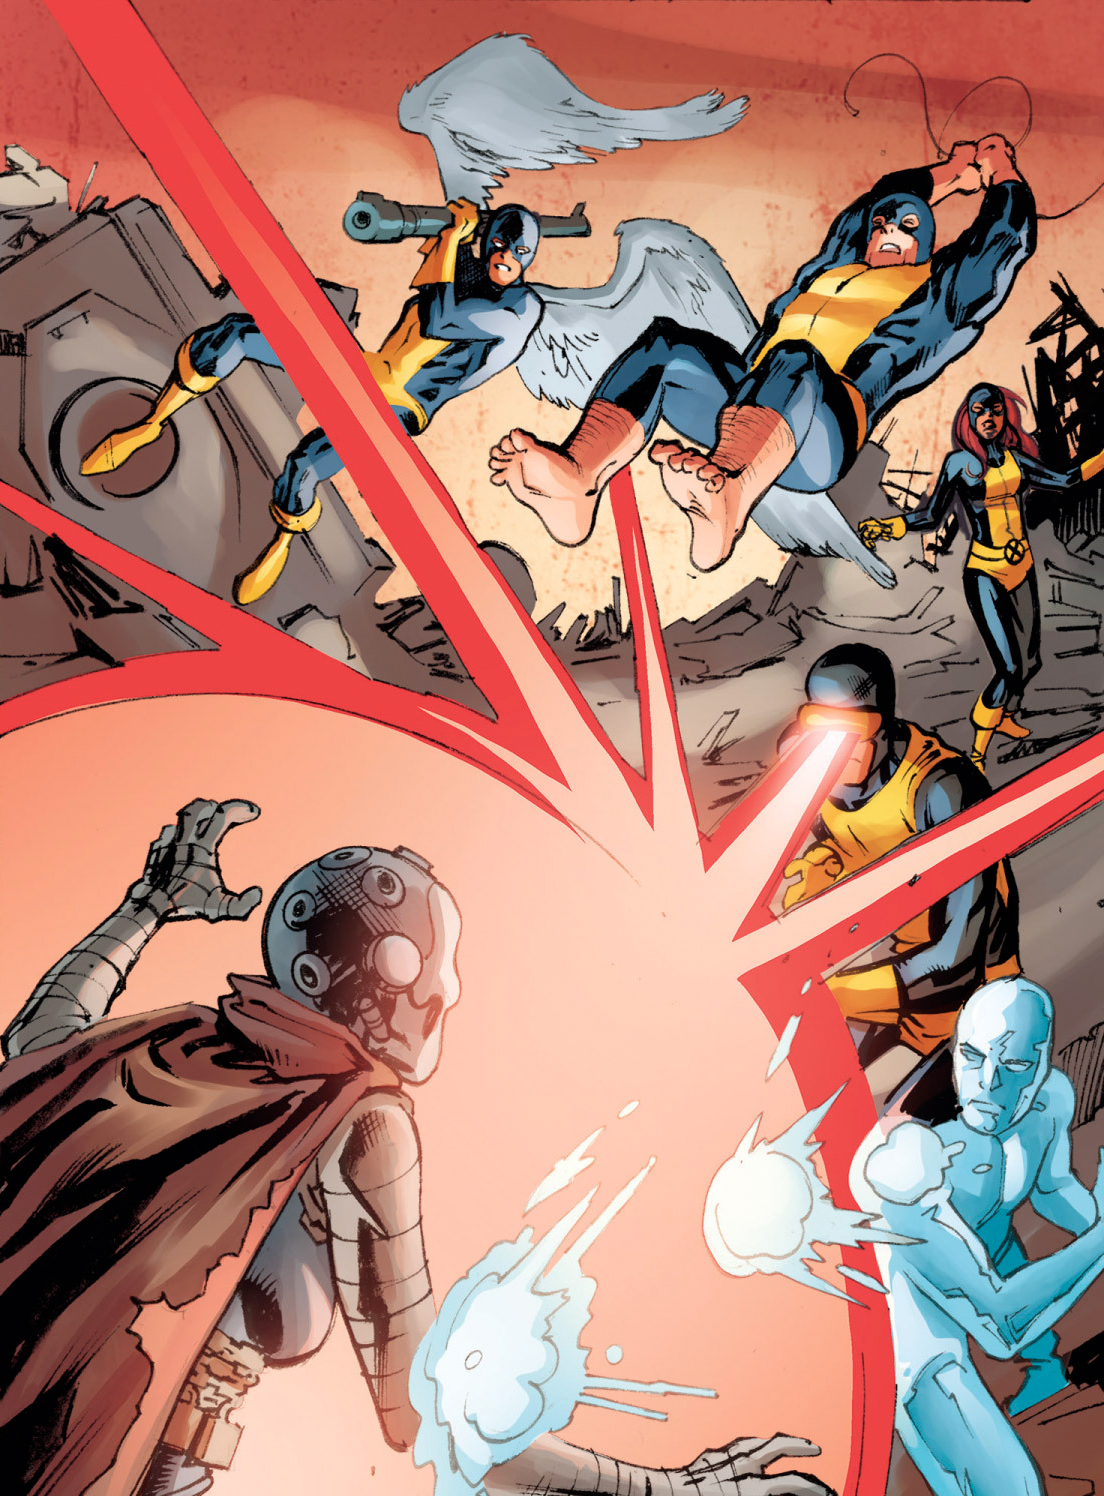 X-Men---Battle-of-the-Atom-002-2